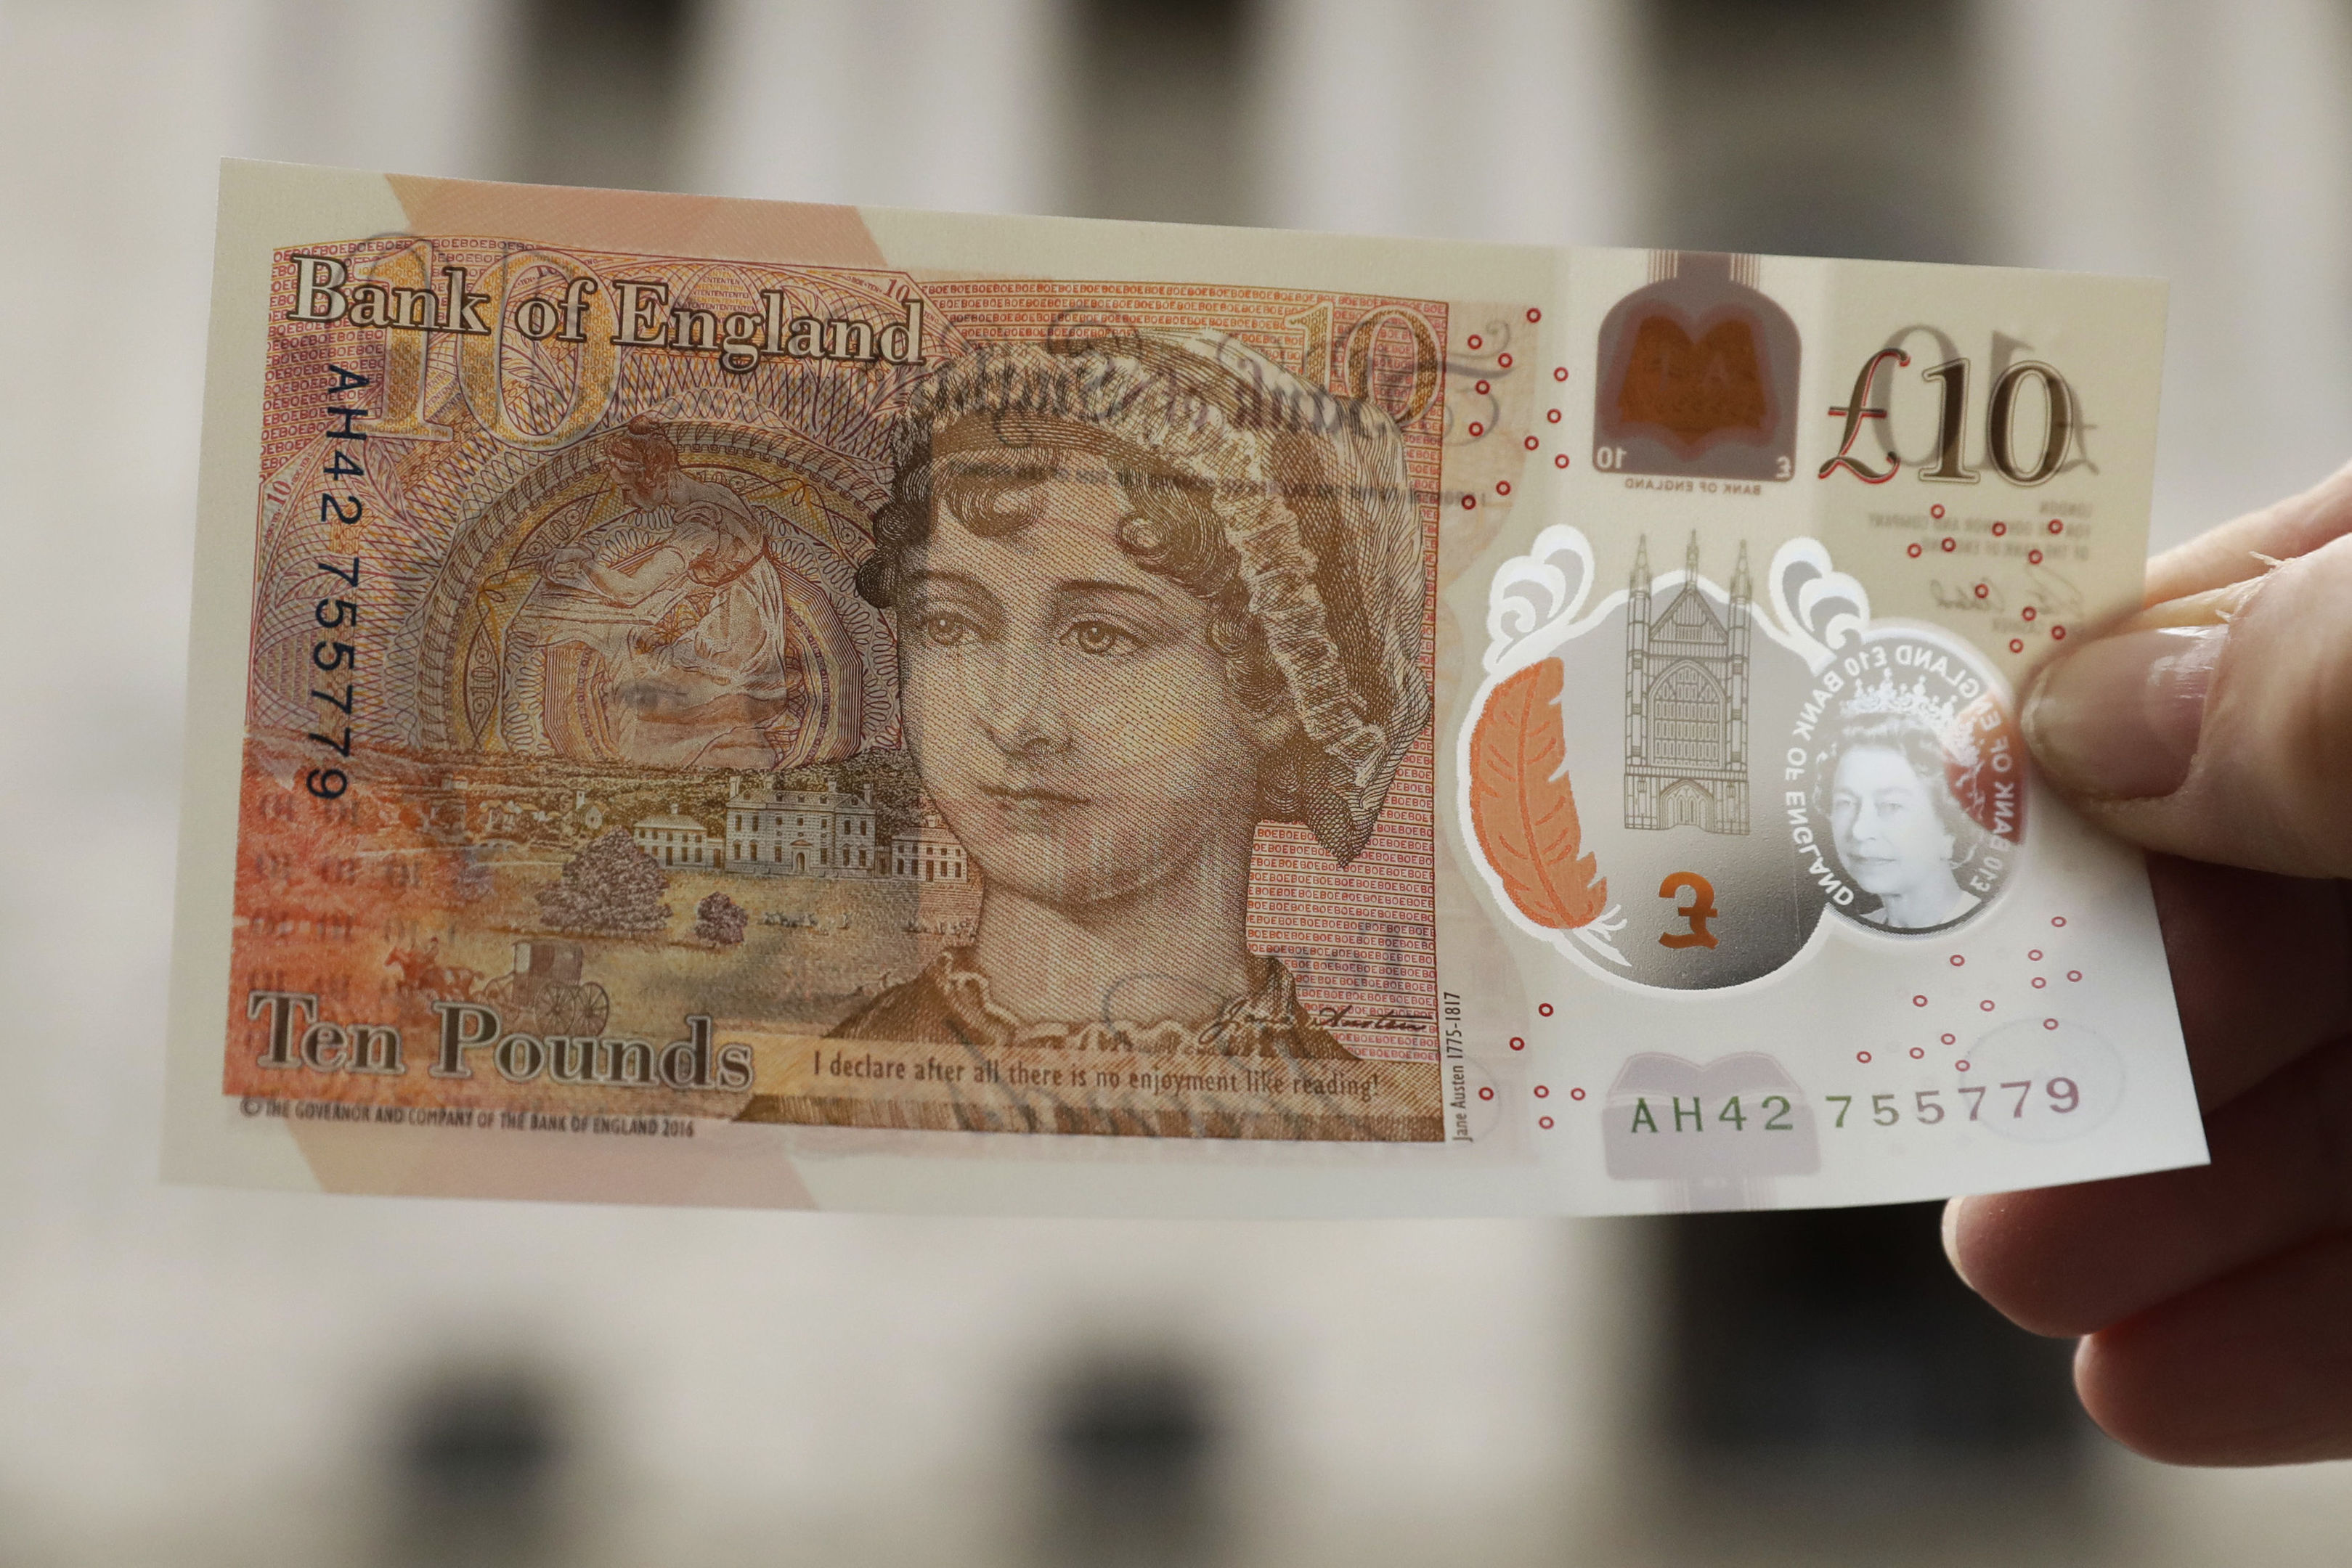 One of the new 10 pound notes (AP Photo/Matt Dunham)